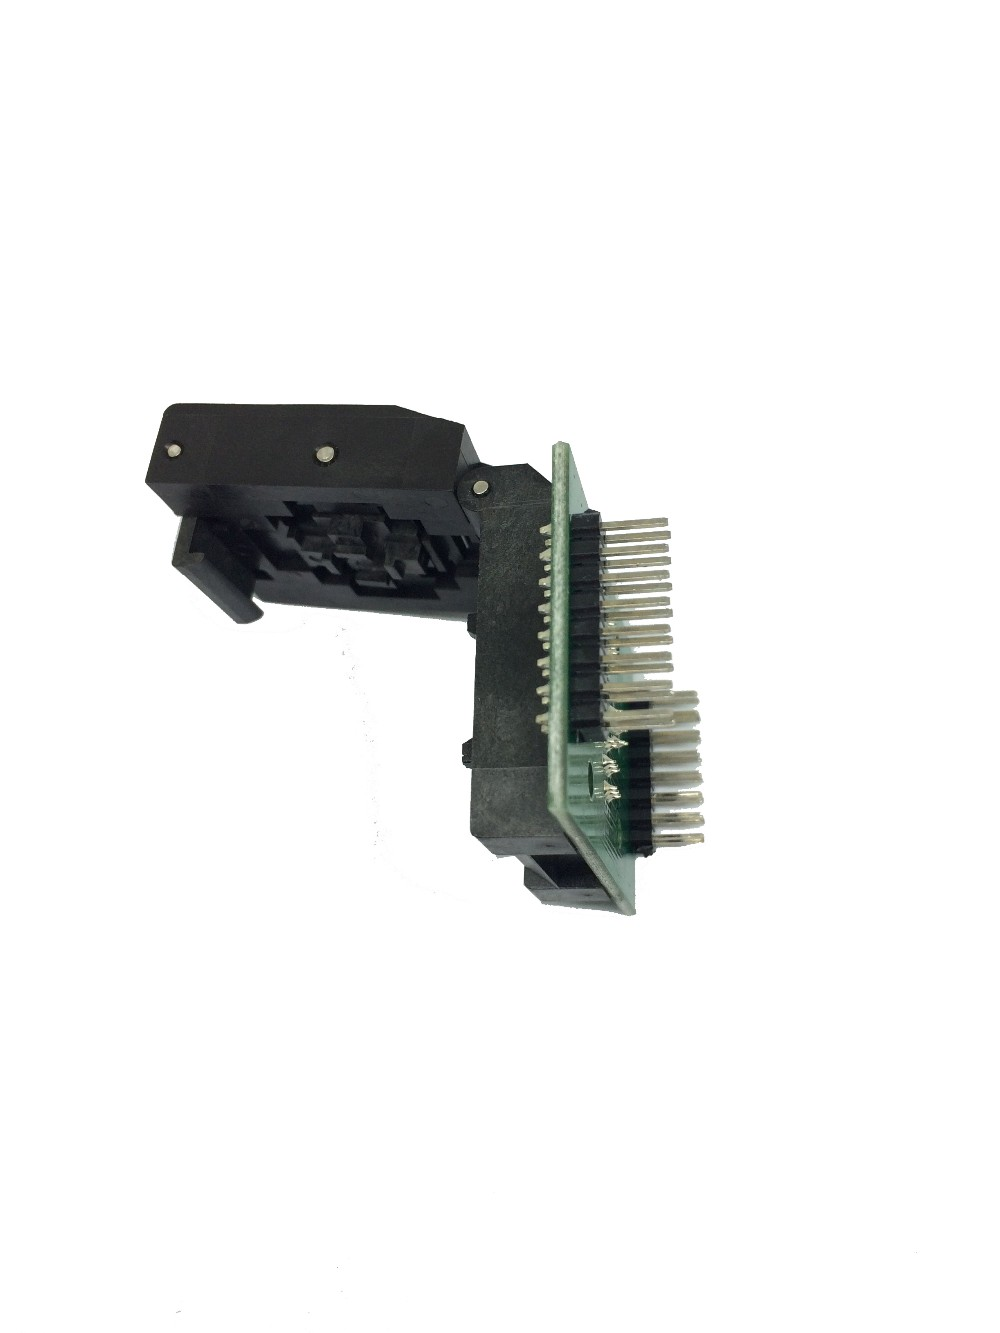 QFP32 TQFP32 LQFP32 to DIP32 Universal Programming Socket Pitch 0.5mm IC Body Size 5x5mm Test Adapter Programmer